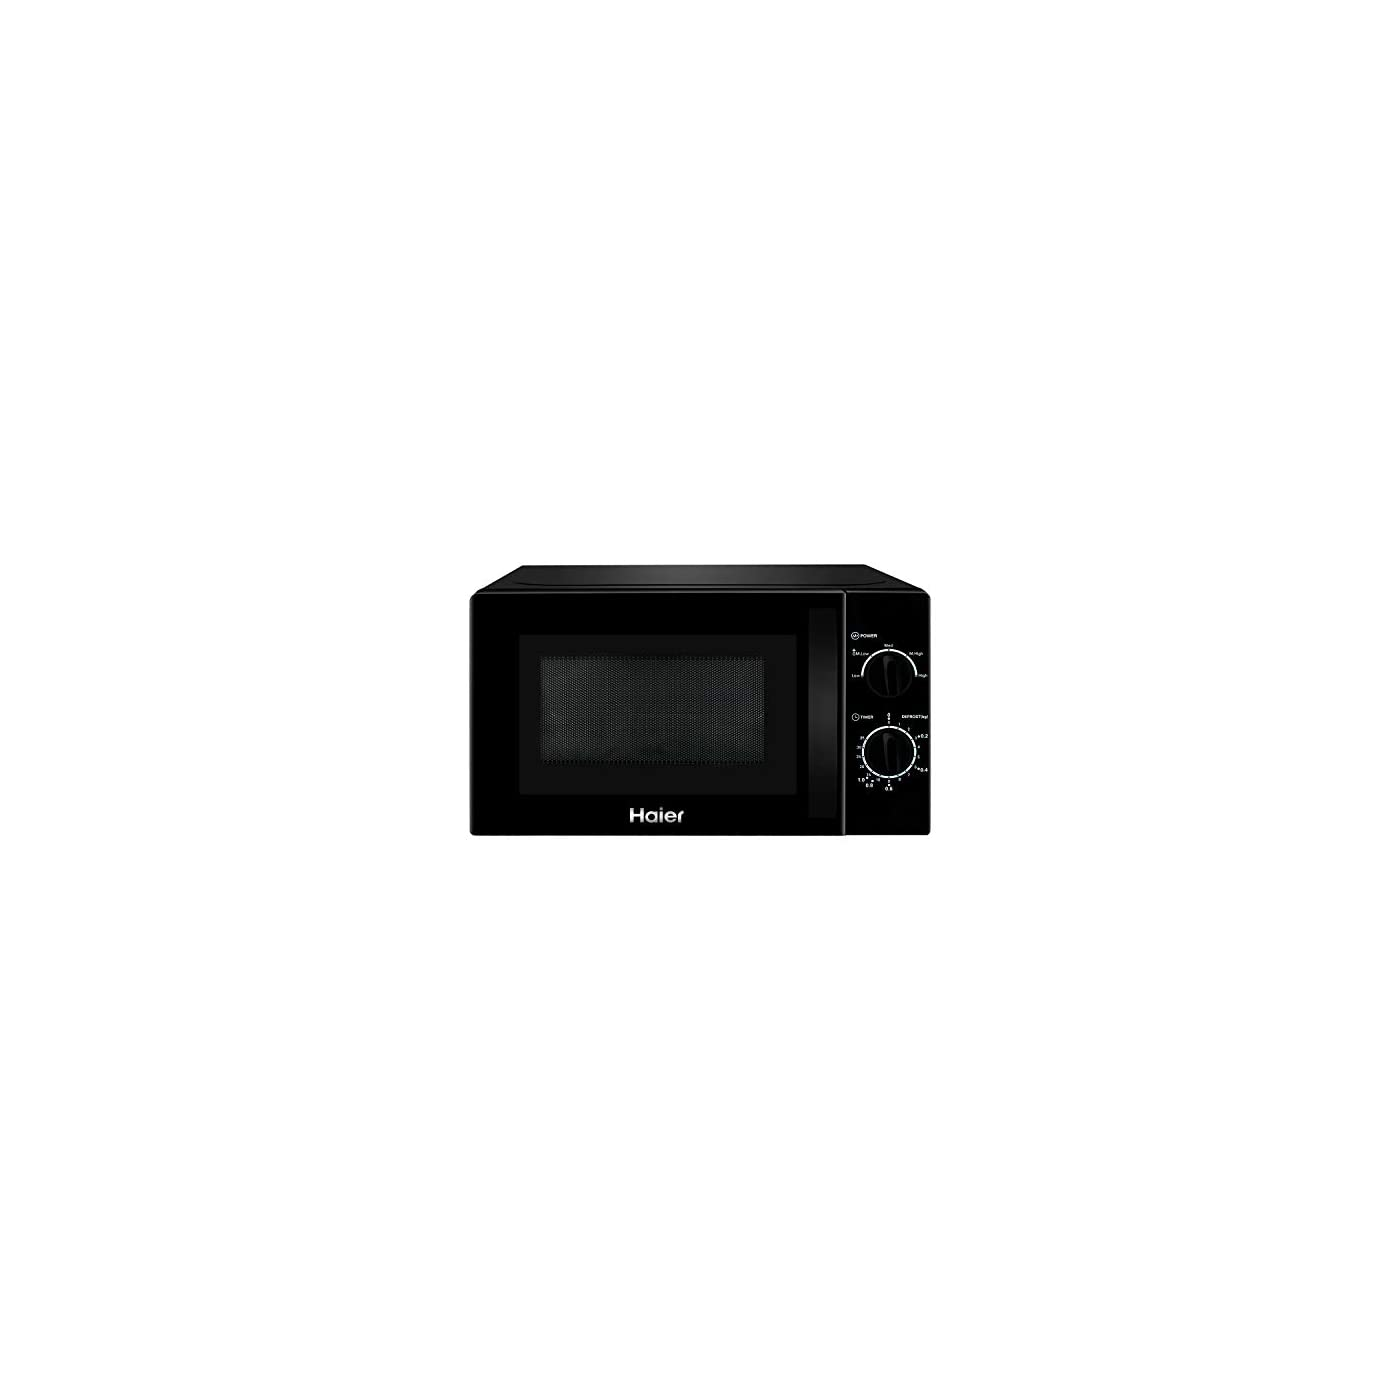 Best Microwave Ovens in India 2020